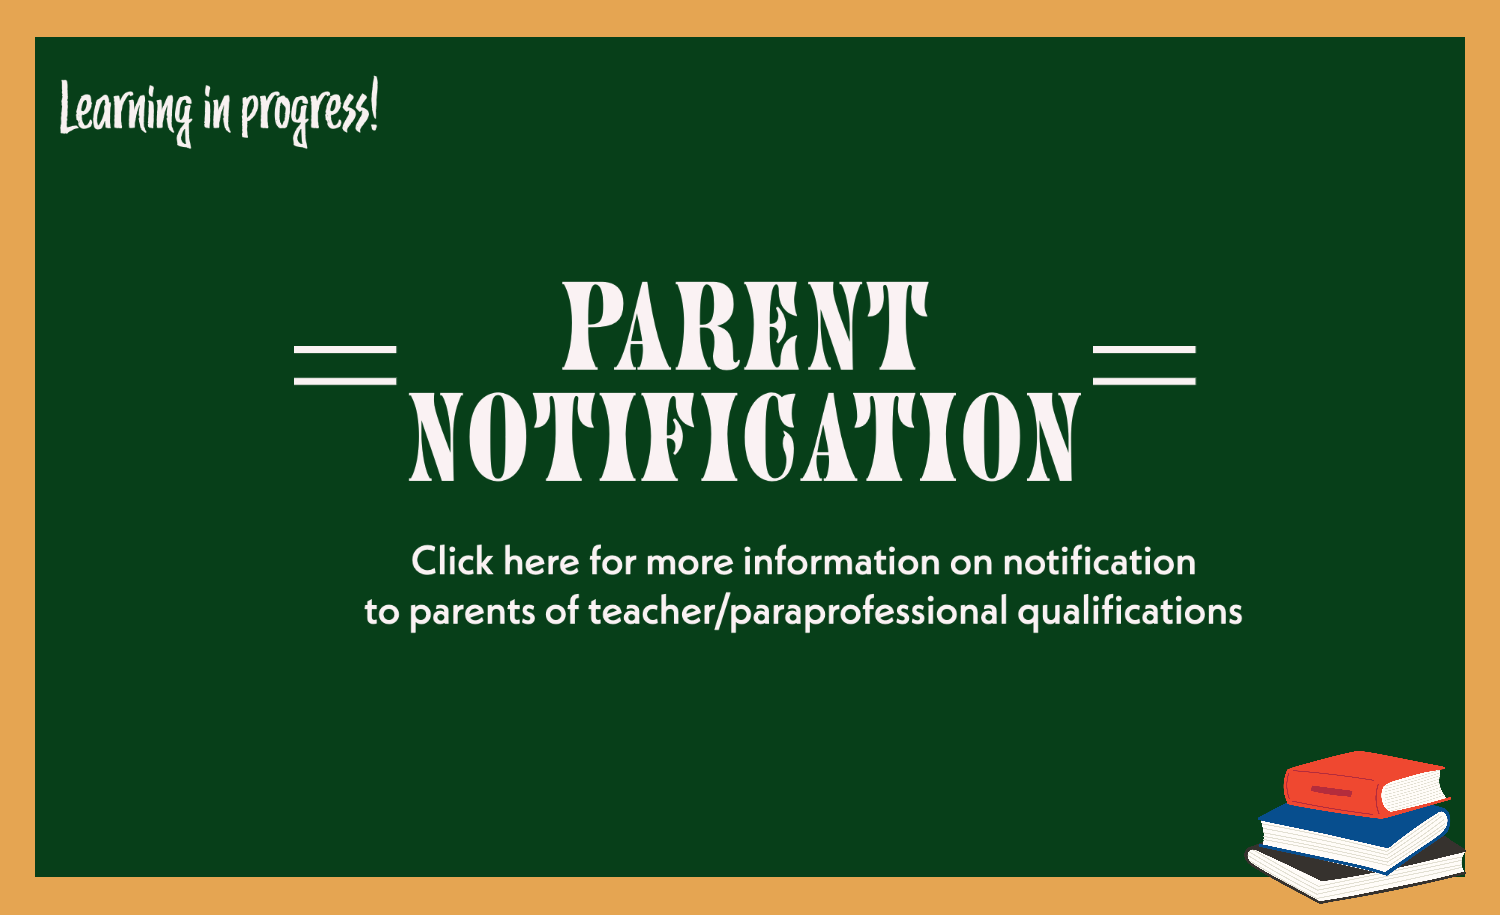 Notification to Parents of Teacher/Paraprofessional Qualifications